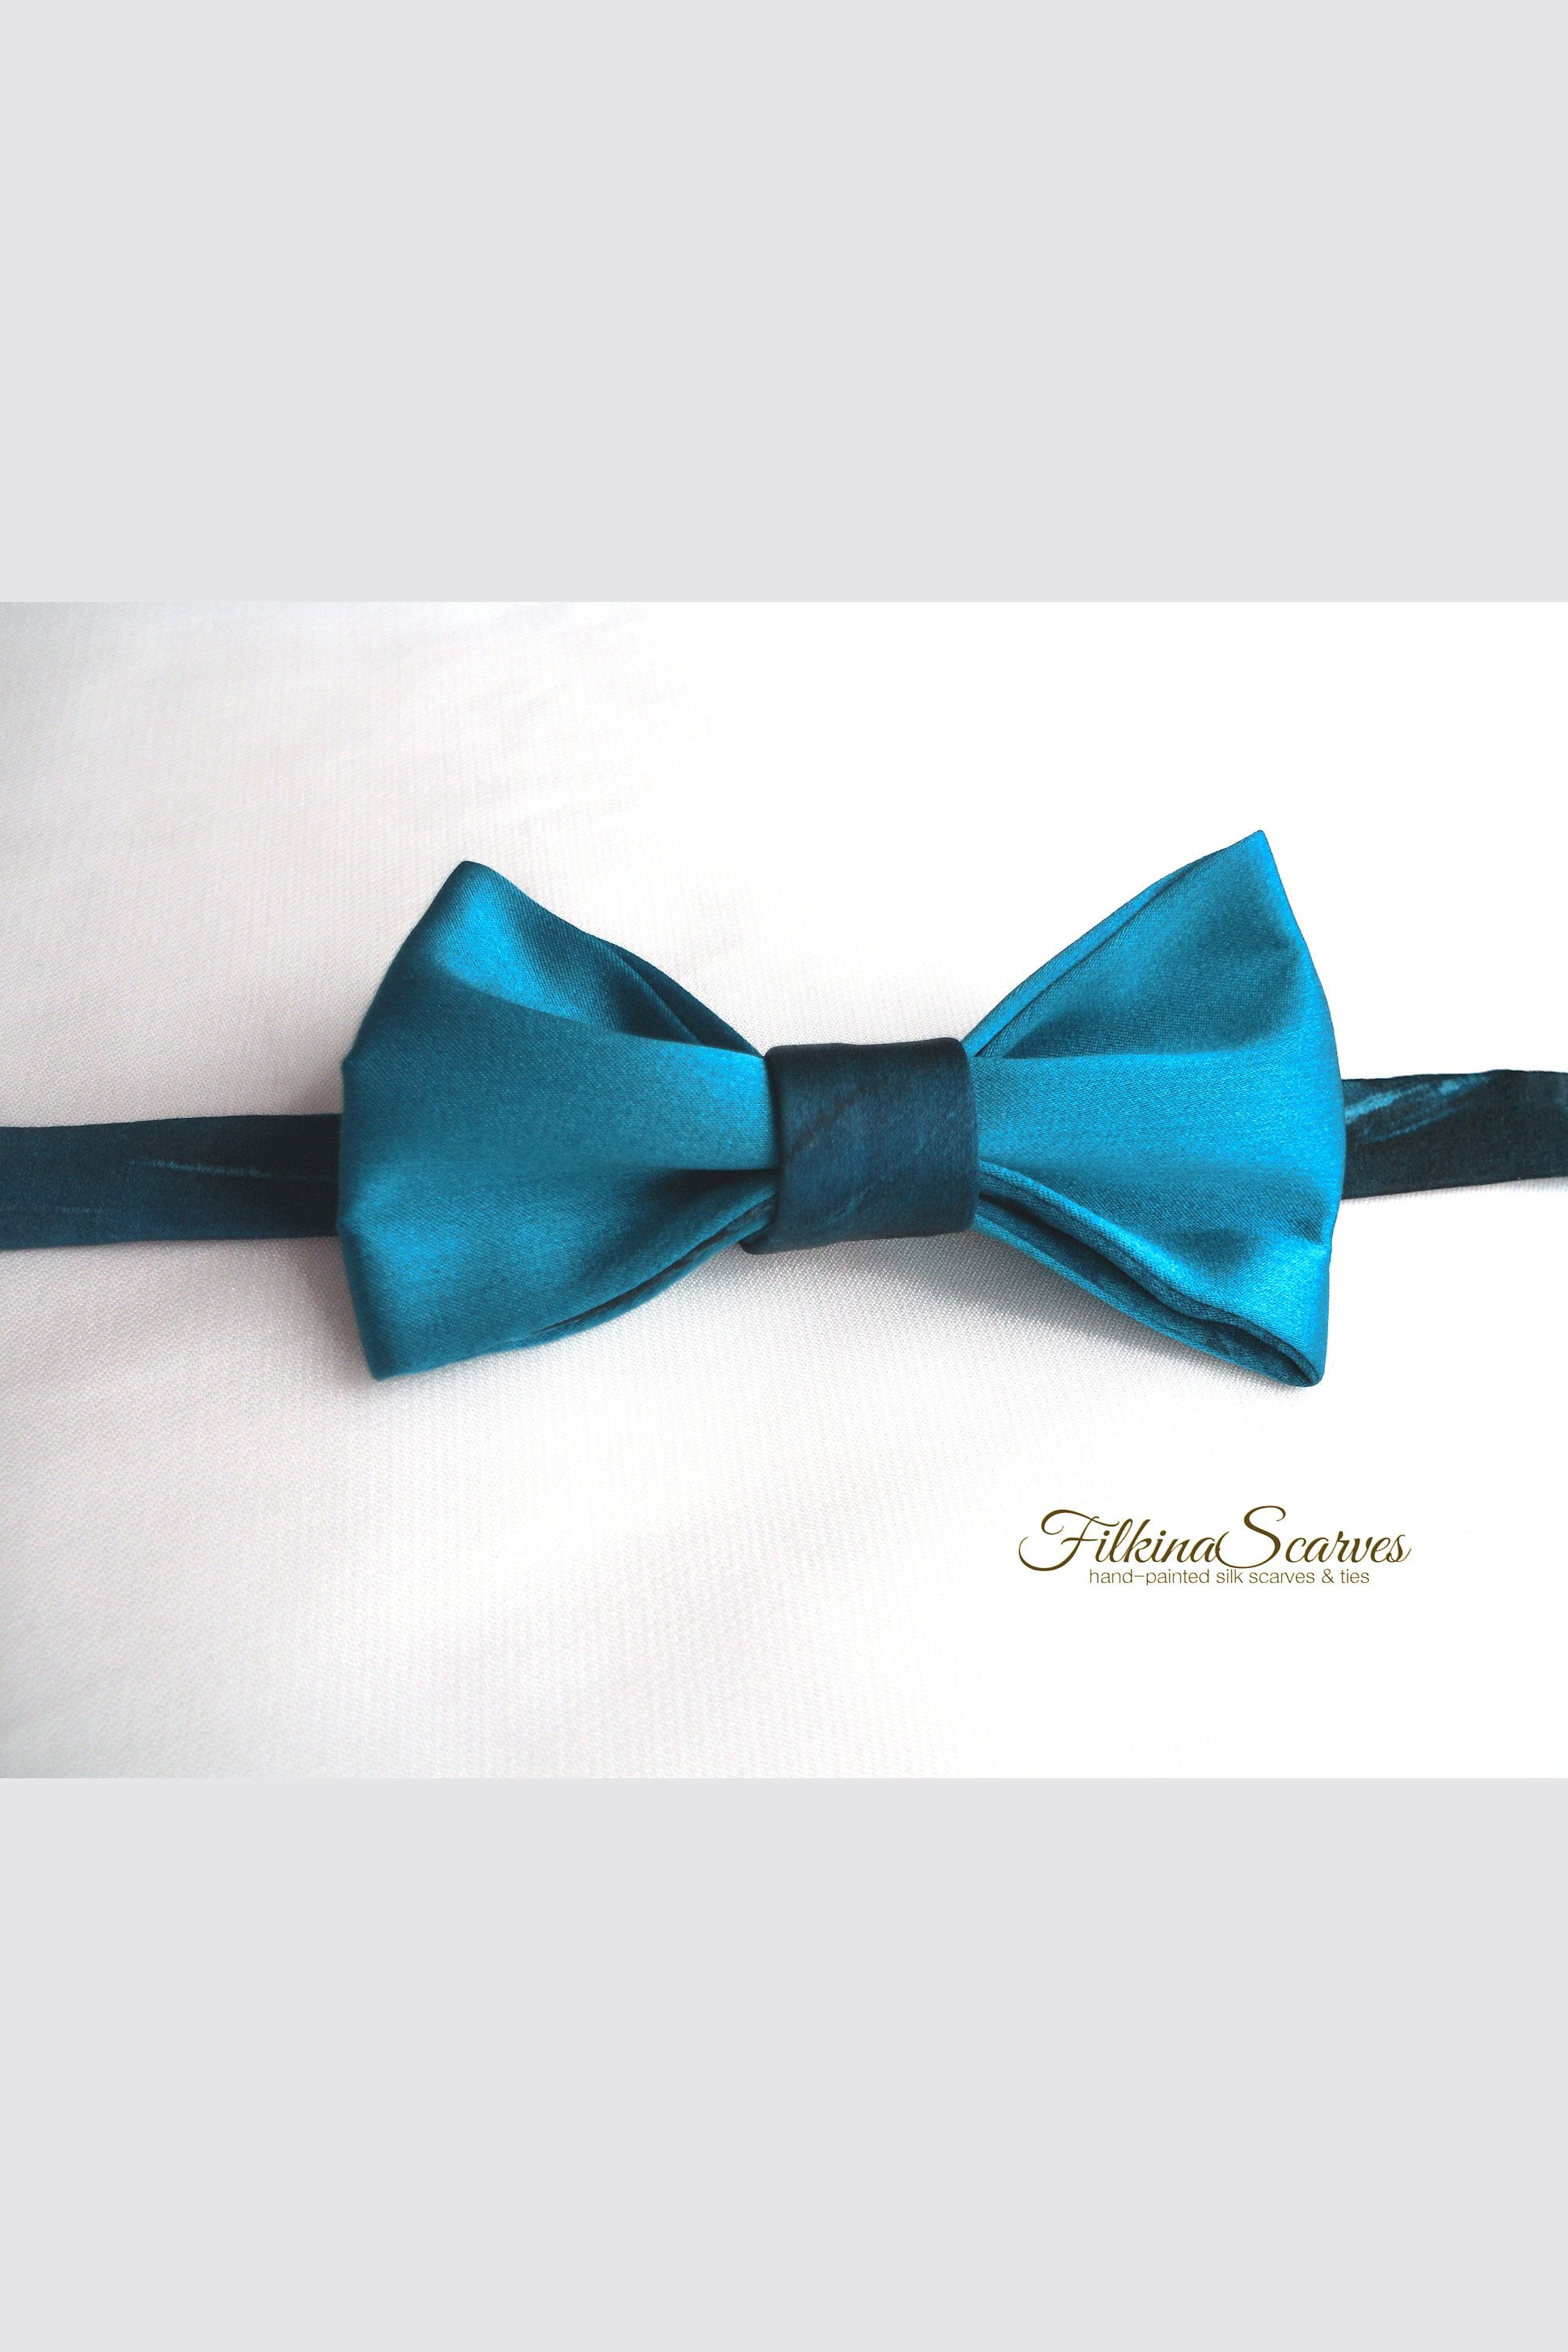 f5951ea1047d Toddler Boys PreTied Wedding Blue Silk Satin Bow Tie HANDPAINTED Page  Childs Bowtie for Kids Adjustable neck strap Self-adhesive Velcro Tape  #bluewedding ...